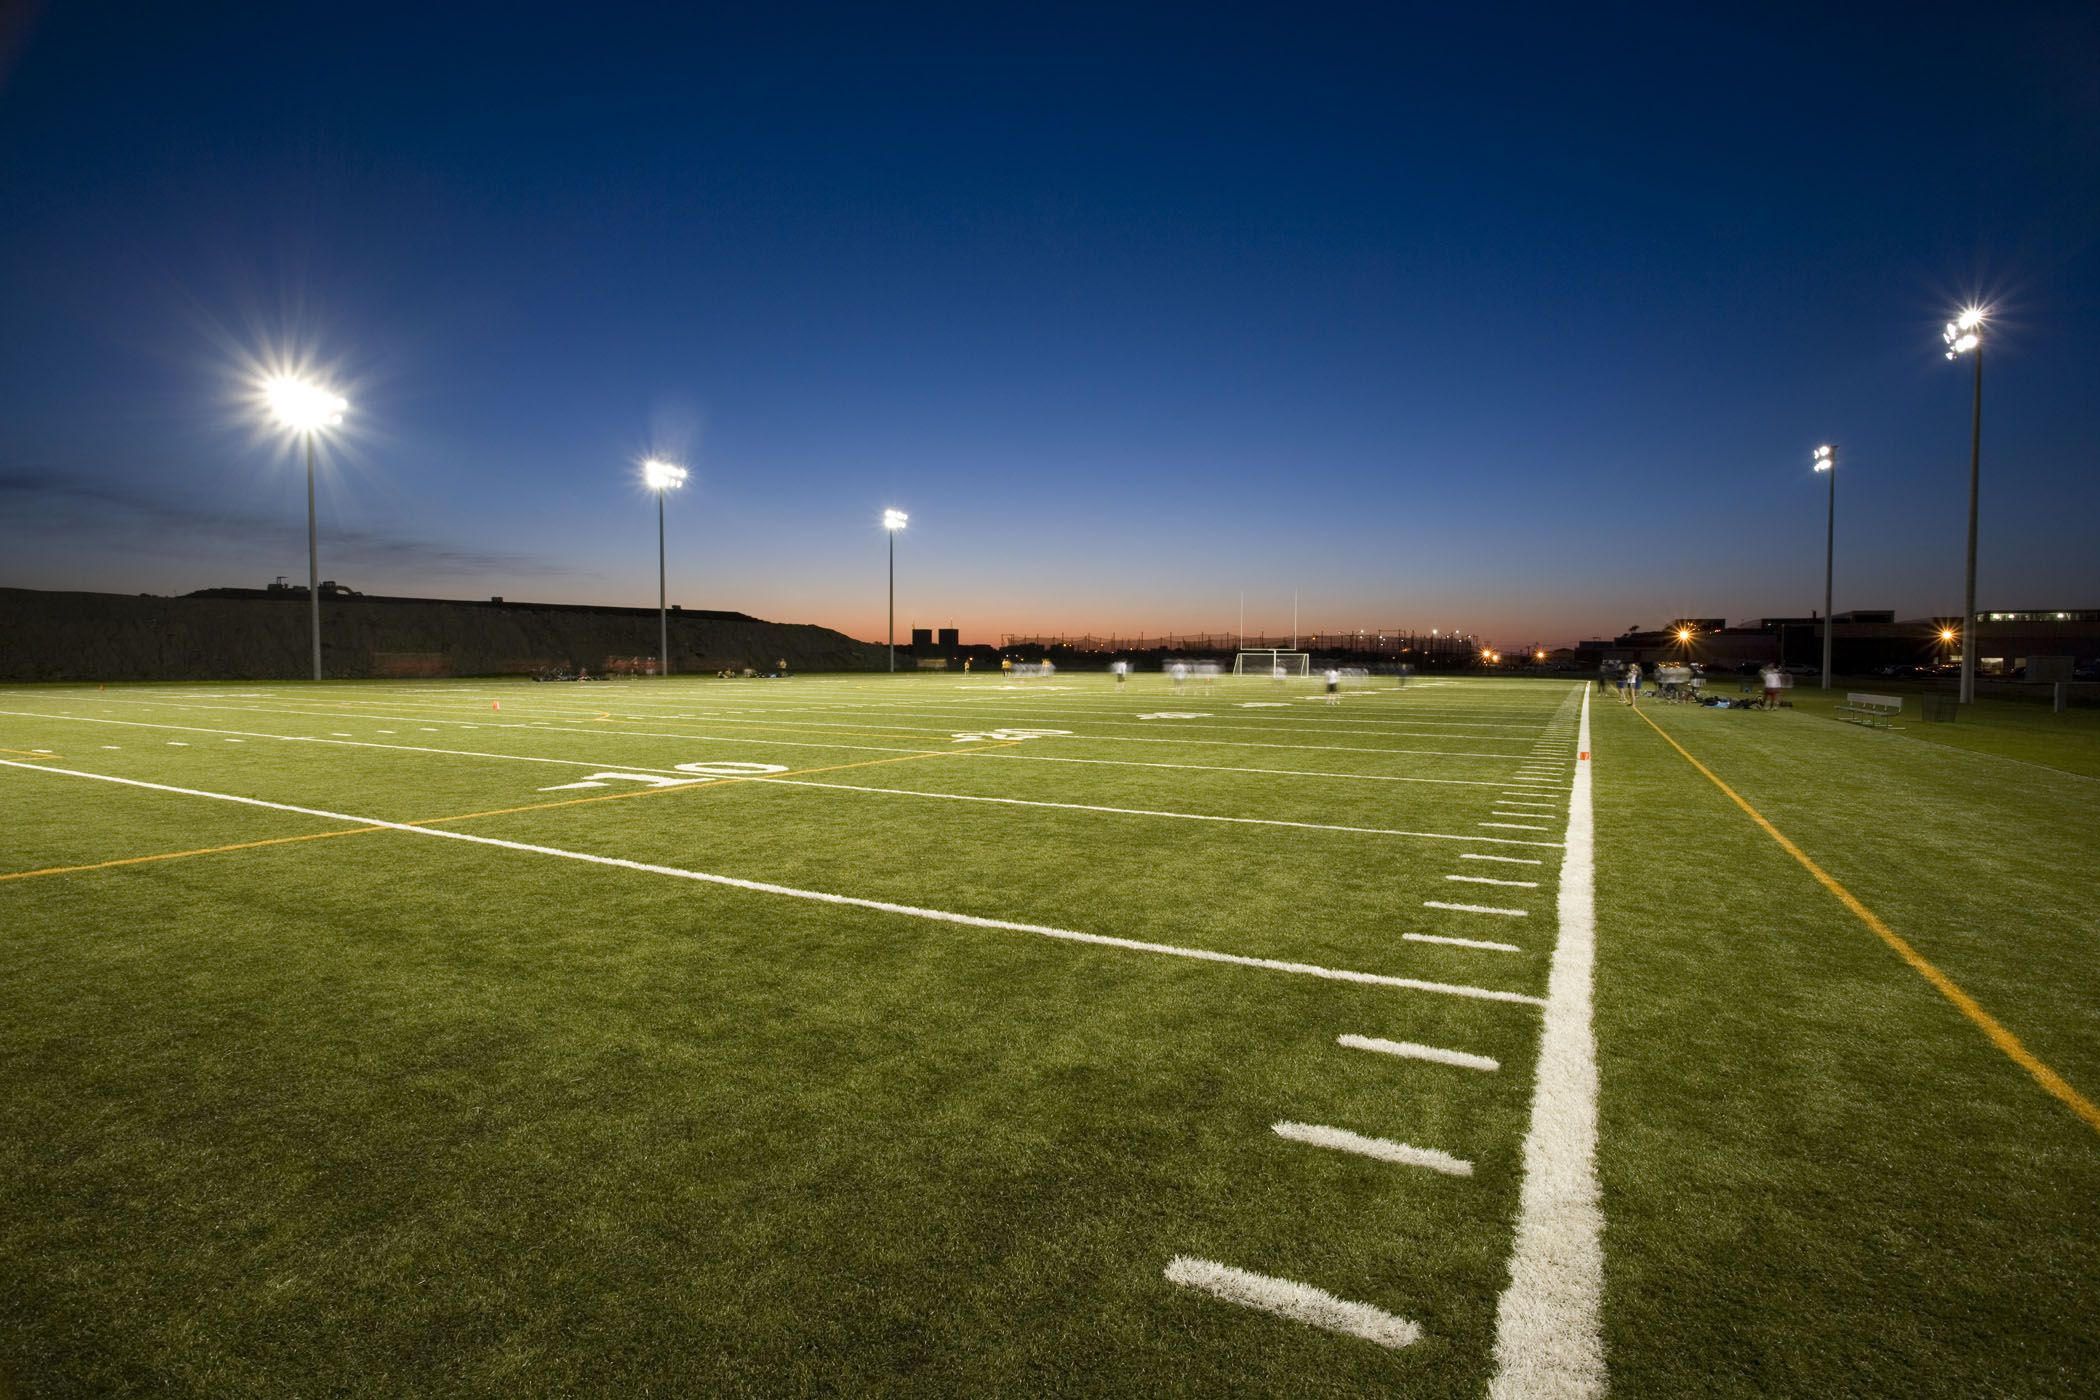 High School Football Field Lights | Top HD Images For Free ...